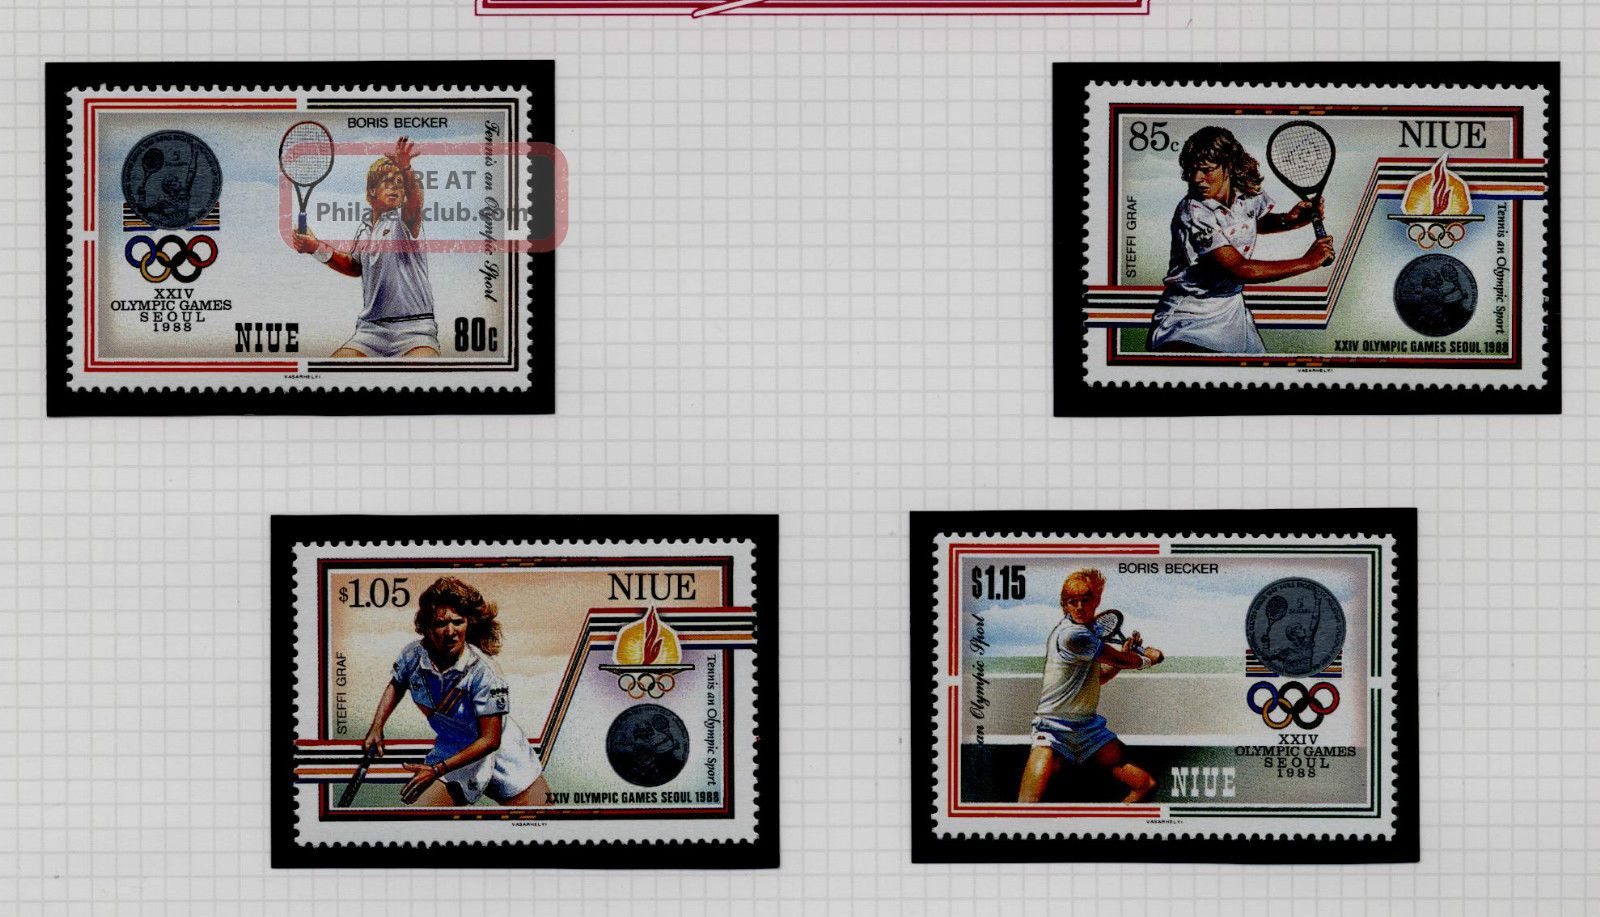 1987 Niue Seoul Olympics Tennis 1st & 2nd Issues Unmounted Australia & Oceania photo